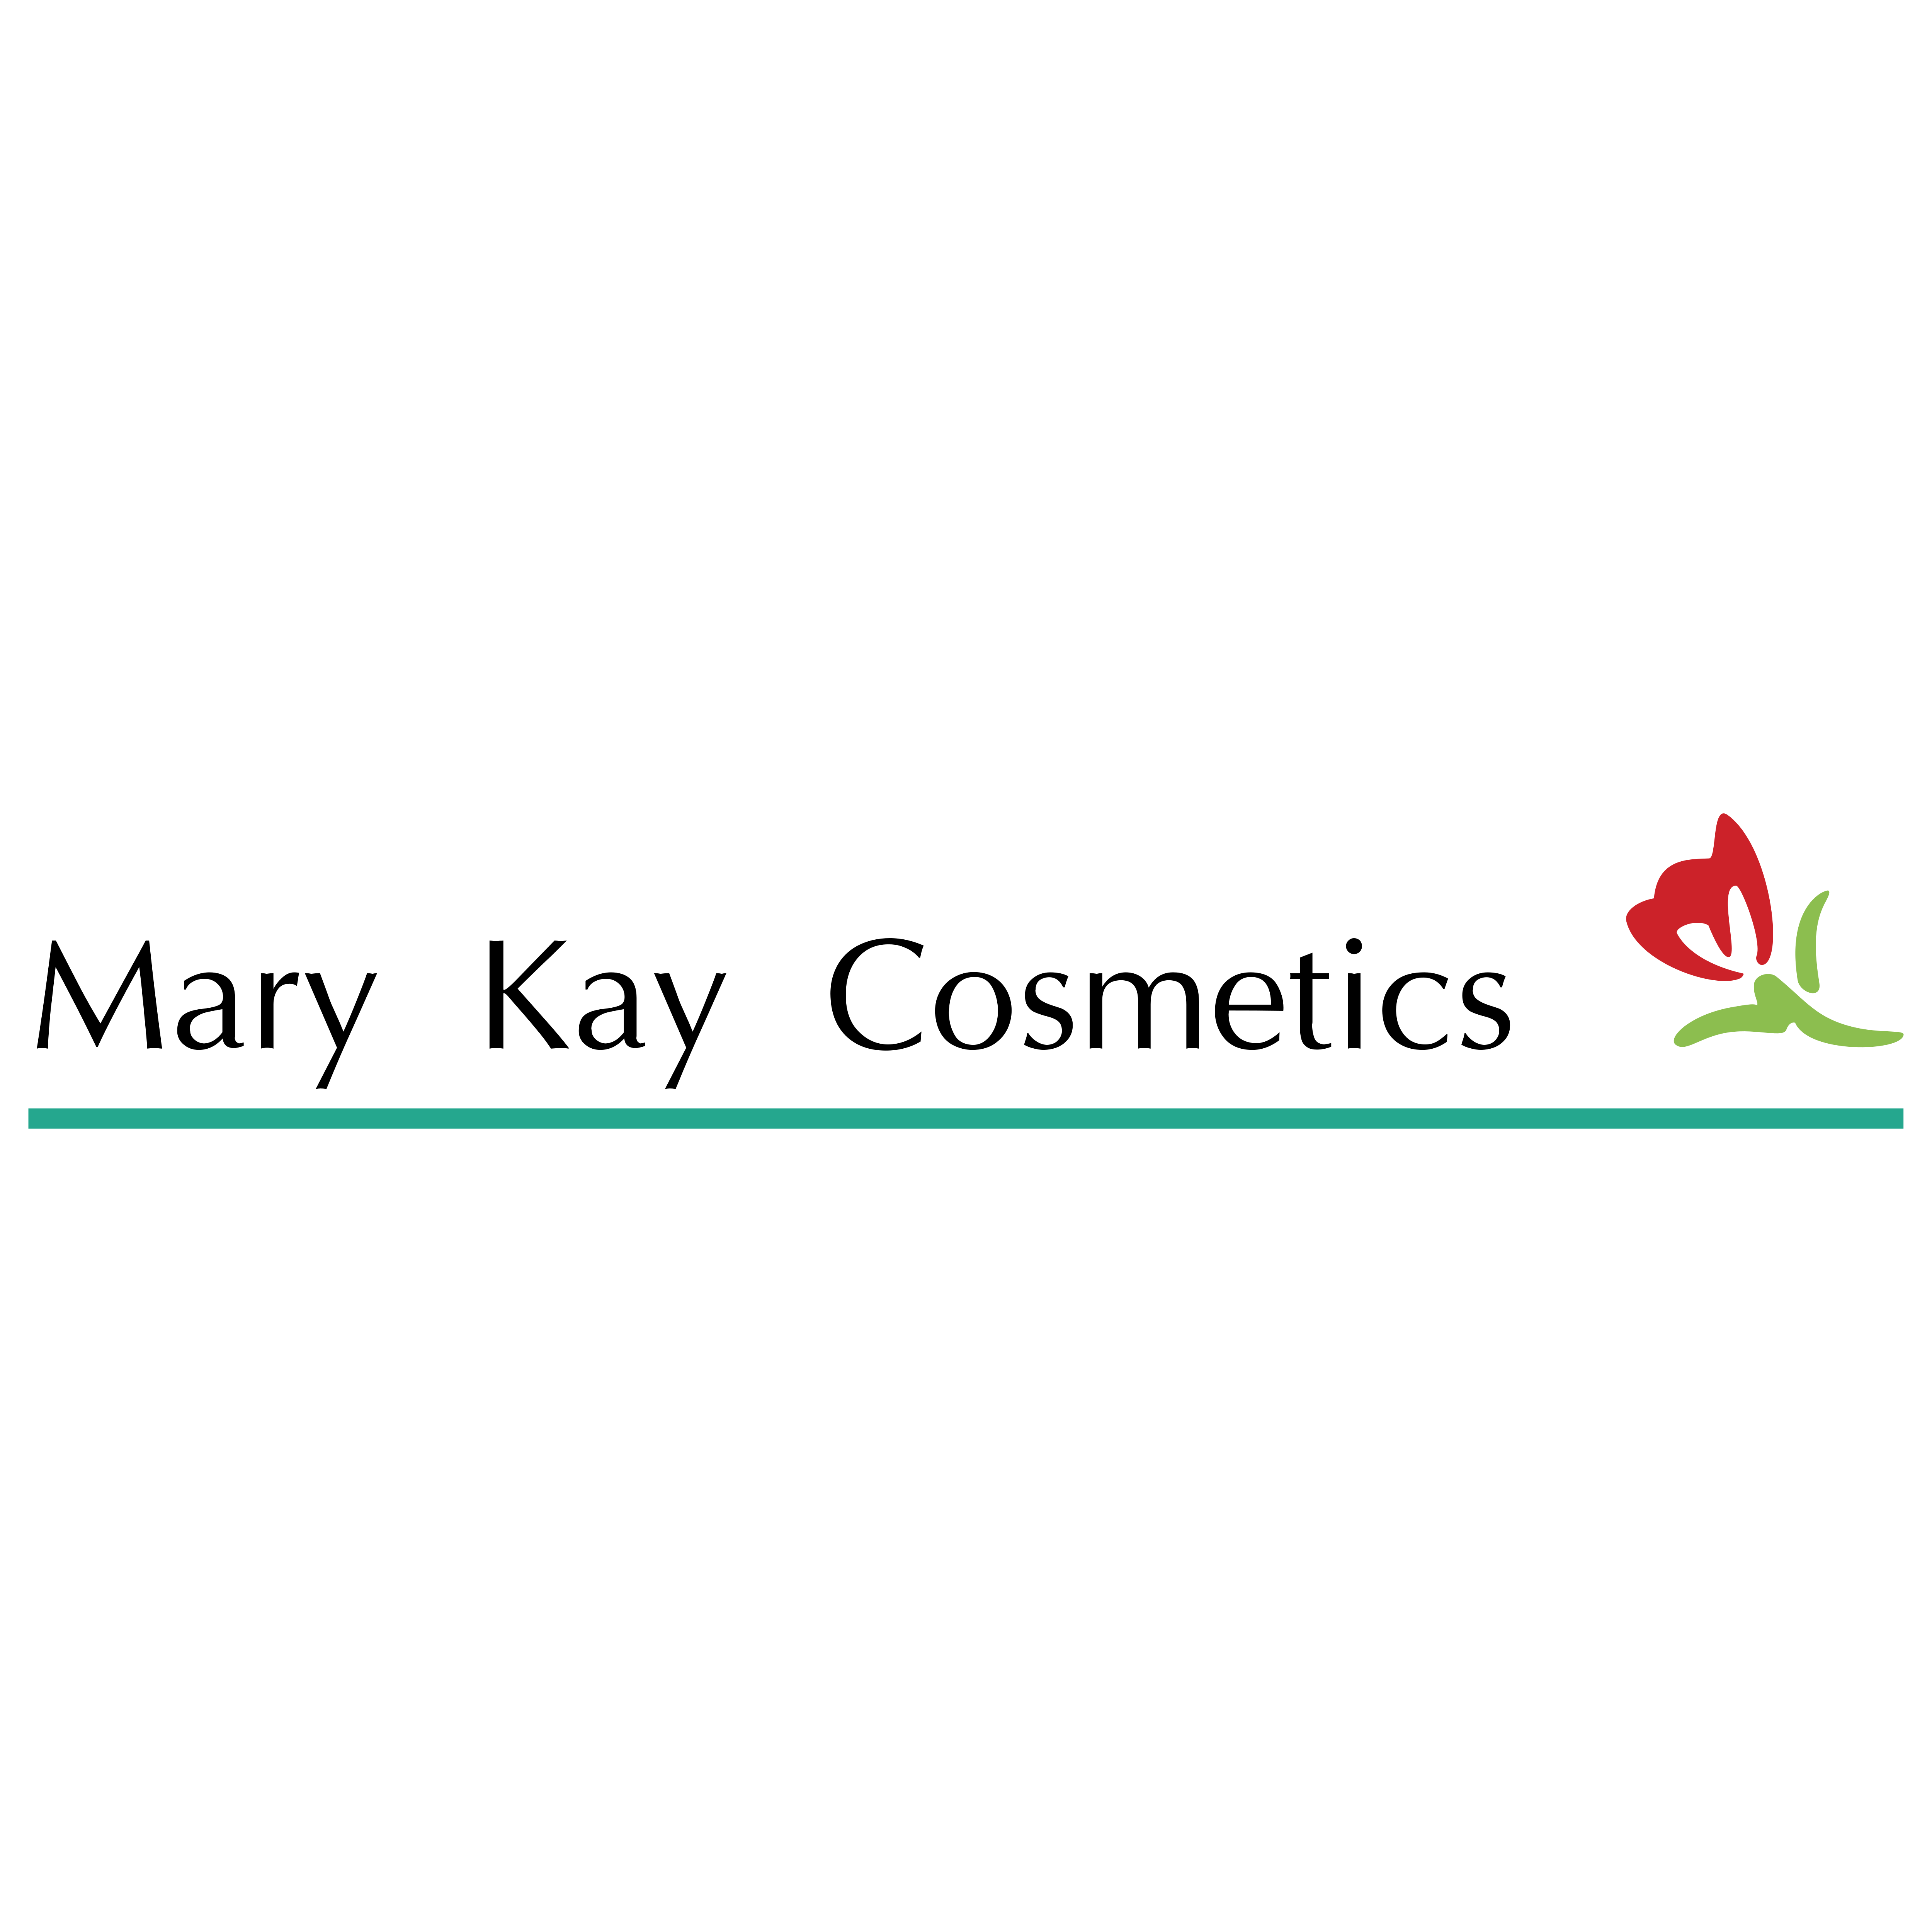 mary kay cosmetics Mary kay remains committed to enriching women's lives mary kay's high-quality skin care and color cosmetics products are sold in more than 35 countries around the world to learn more about mary kay.